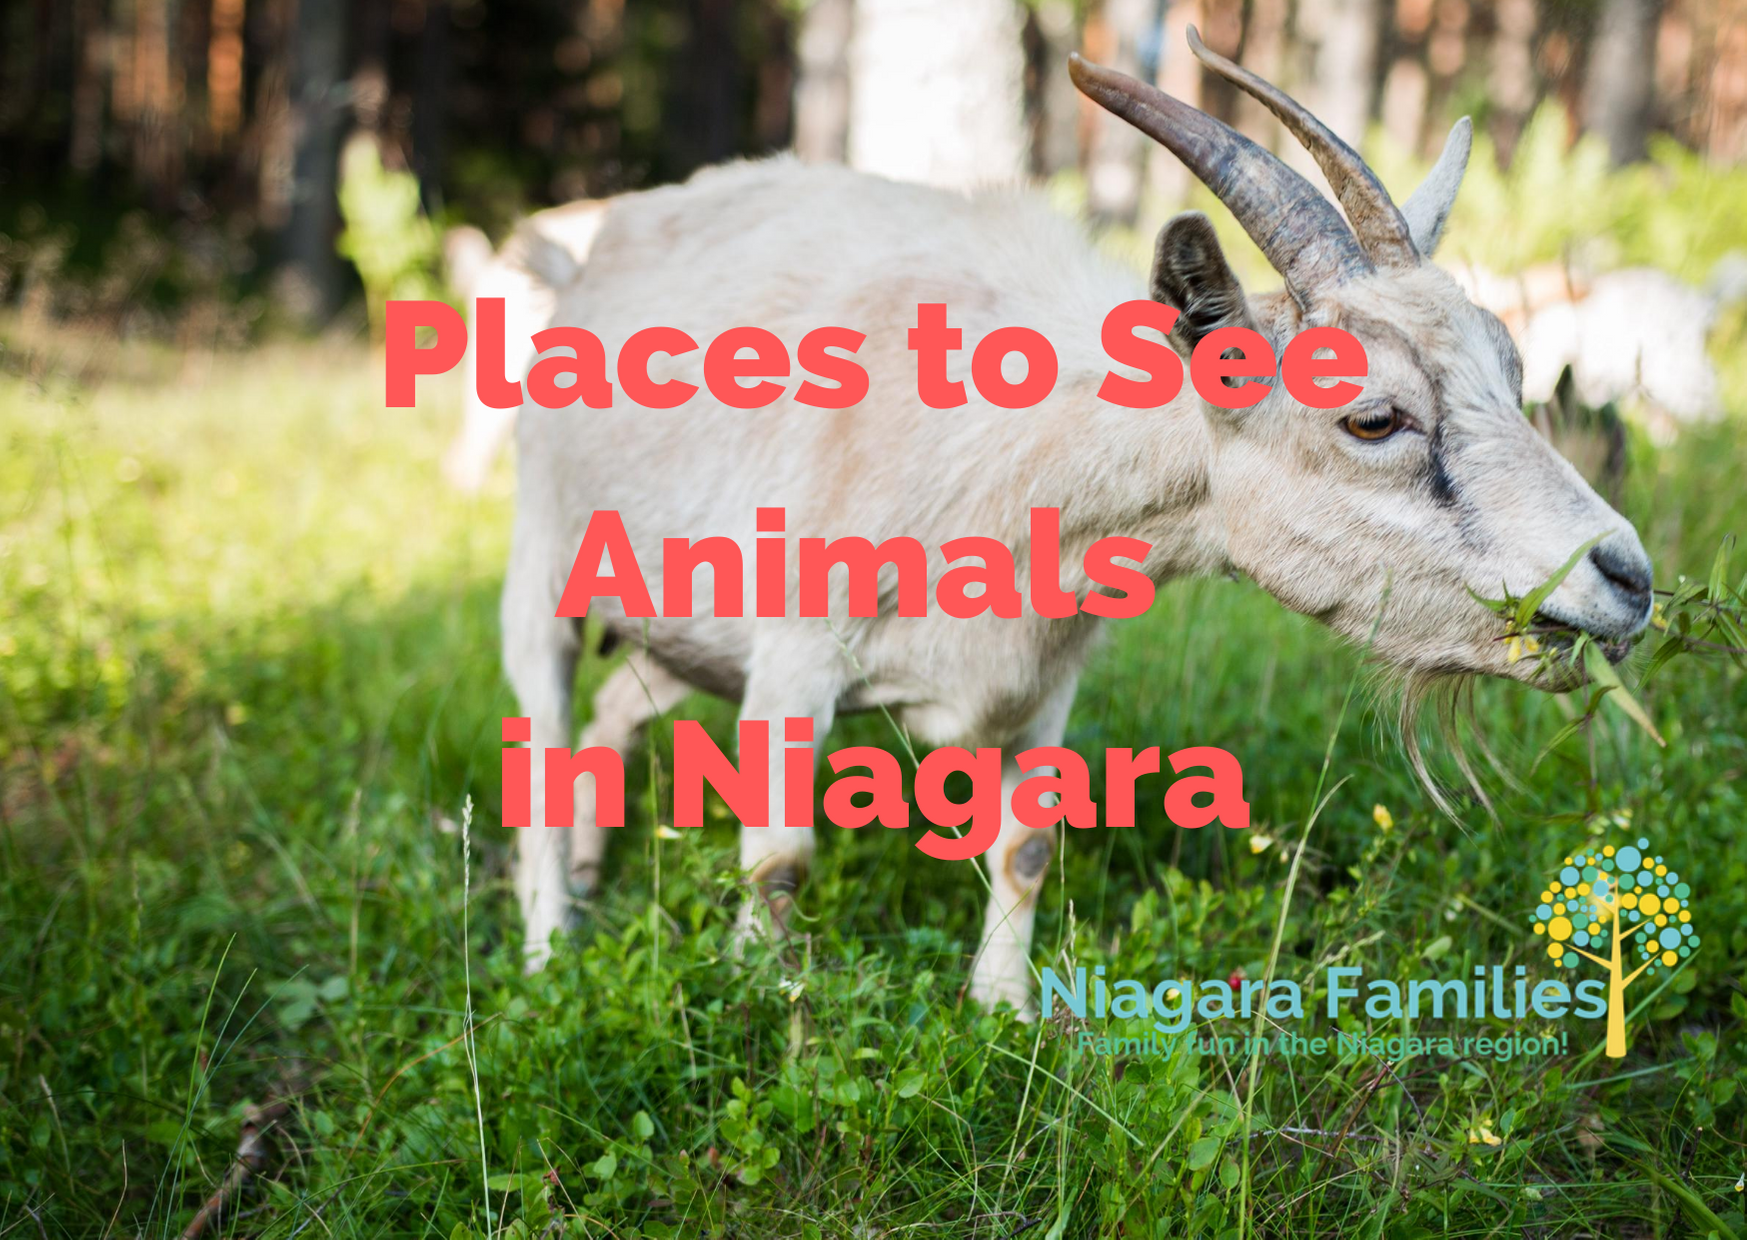 places to see animals in niagara